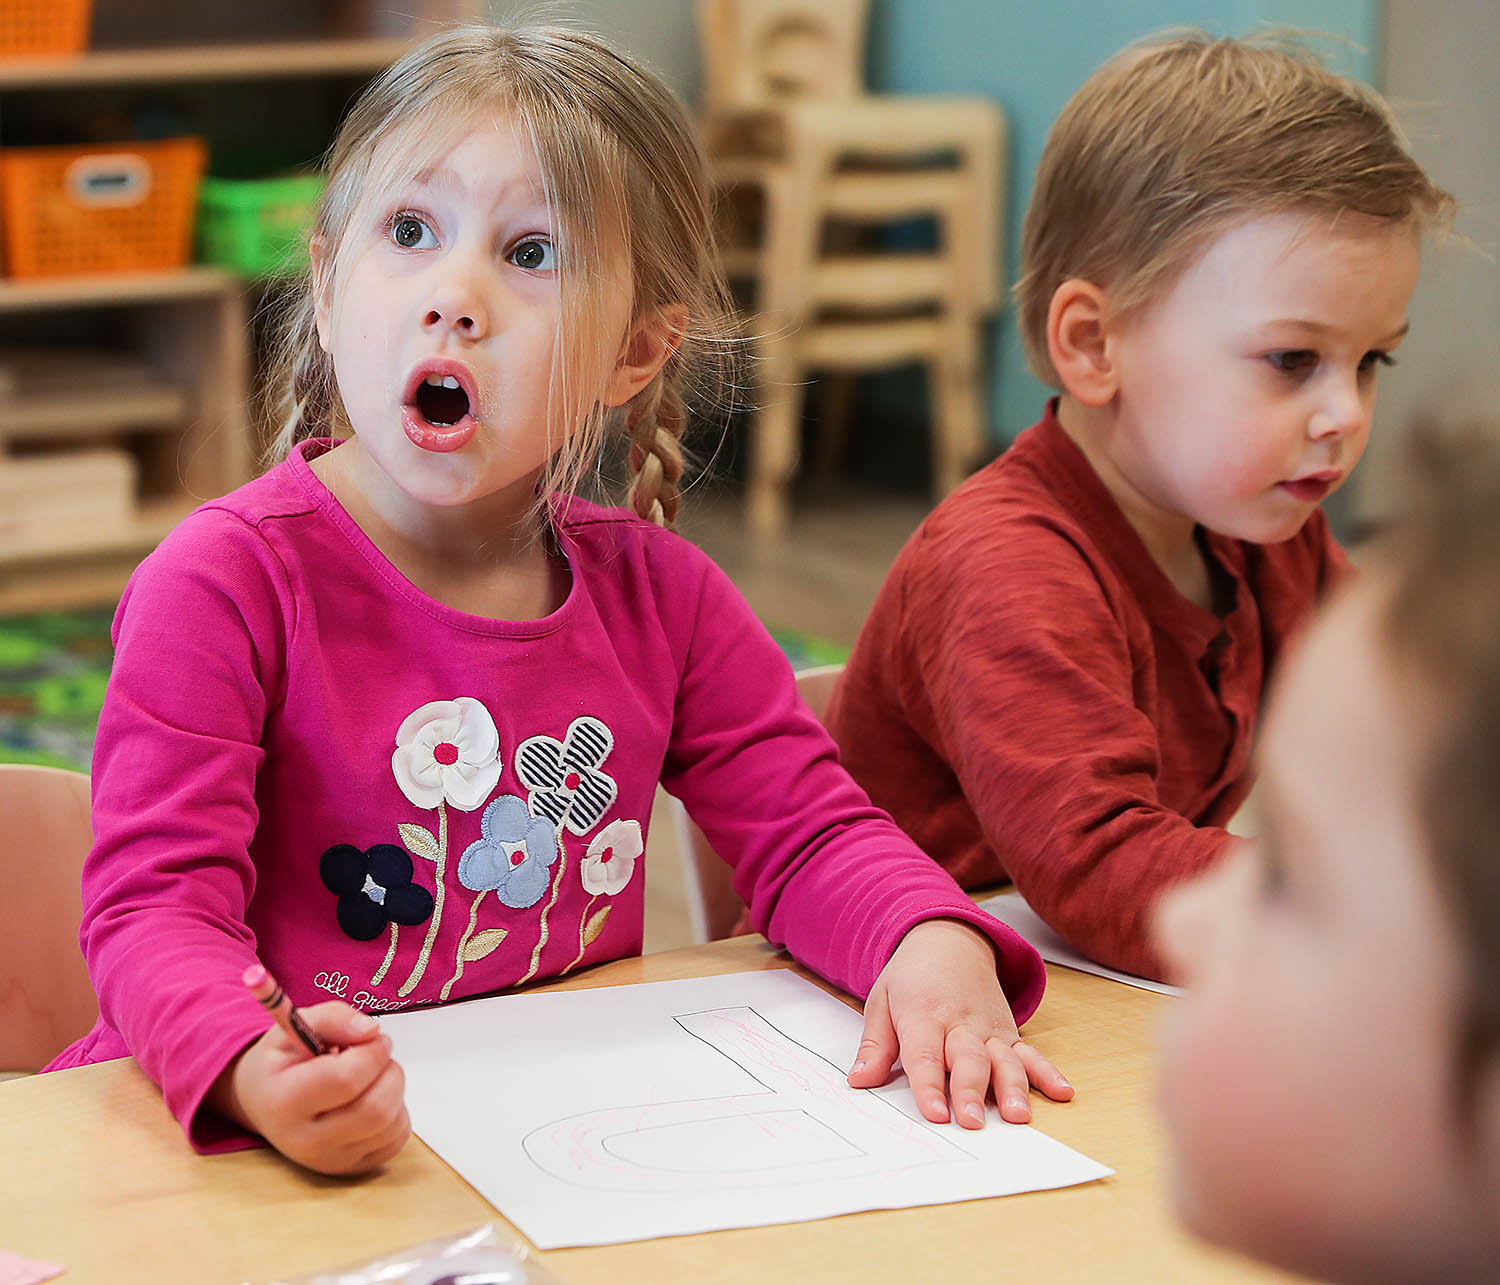 """Joselyn Bauer, 3, expresses excitement while learning about the letter """"P"""" as her classmate Sebastian Jensen, 3, colors his letter in the preschool transition class at UNK's LaVonne Kopecky Plambeck Early Childhood Education Center."""